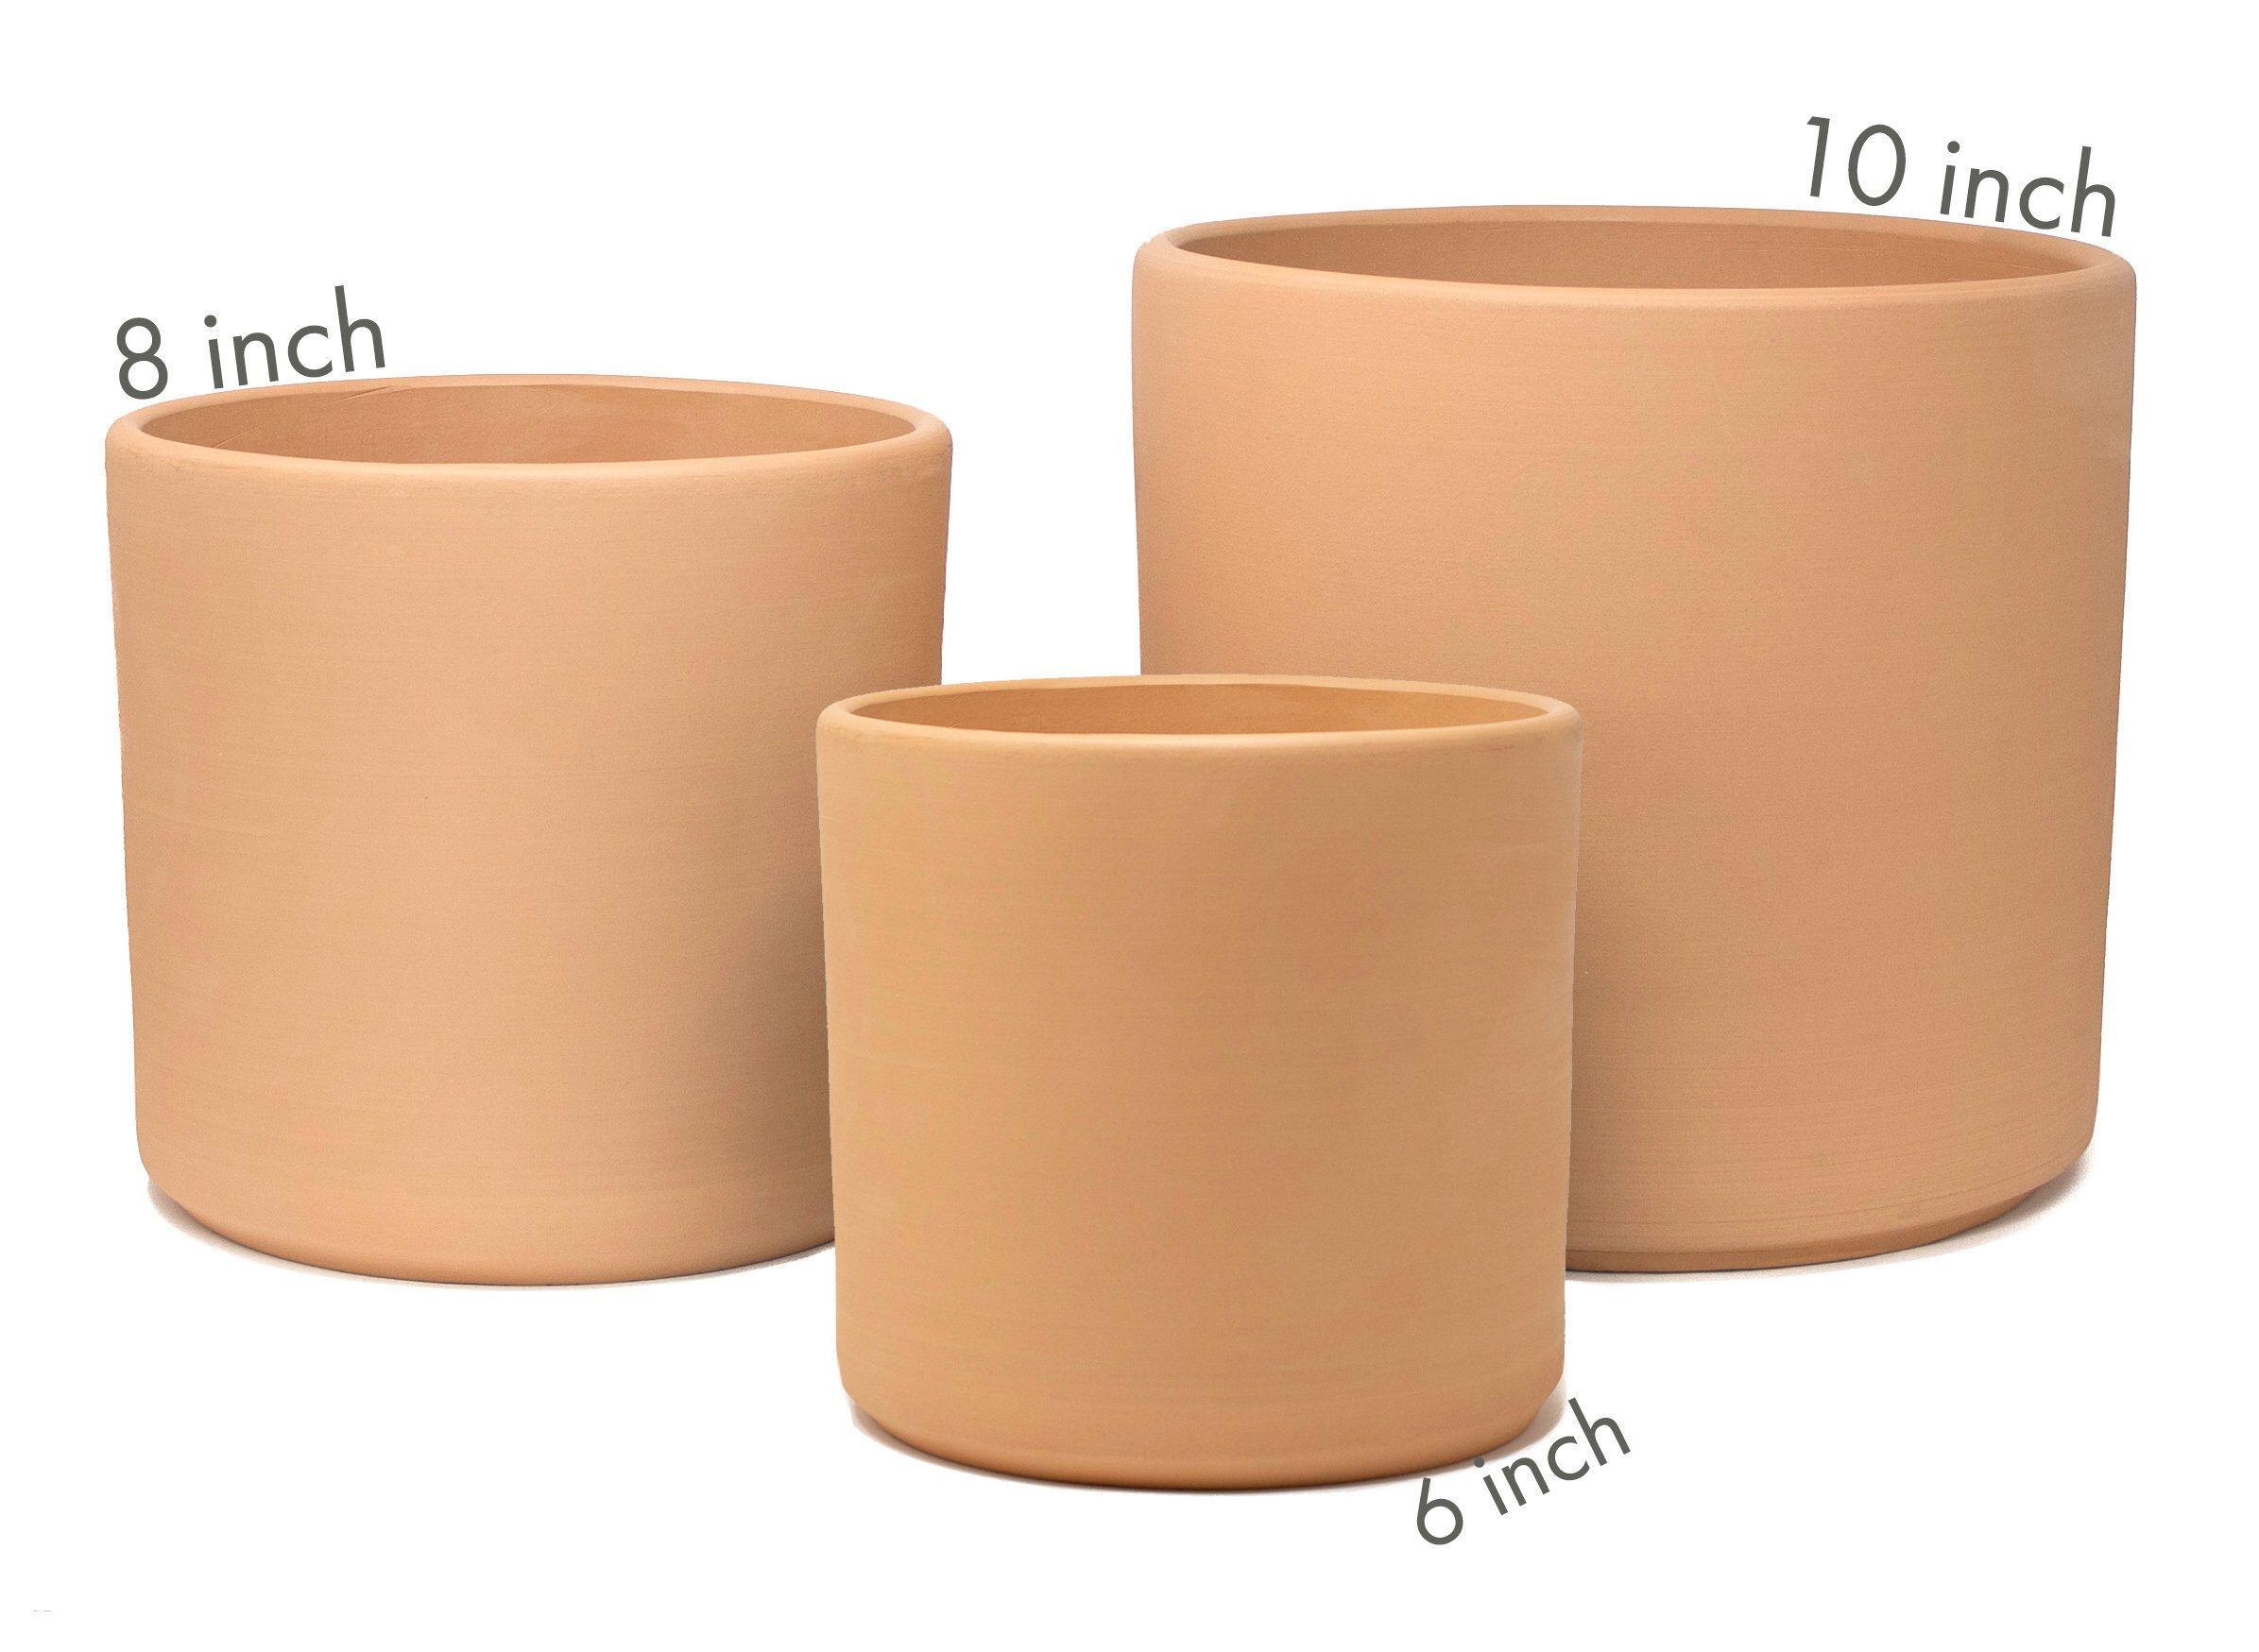 Pin By Ronnie Button On C E R A M I C S Styling Planters Planter Pots Indoor Contemporary Planters